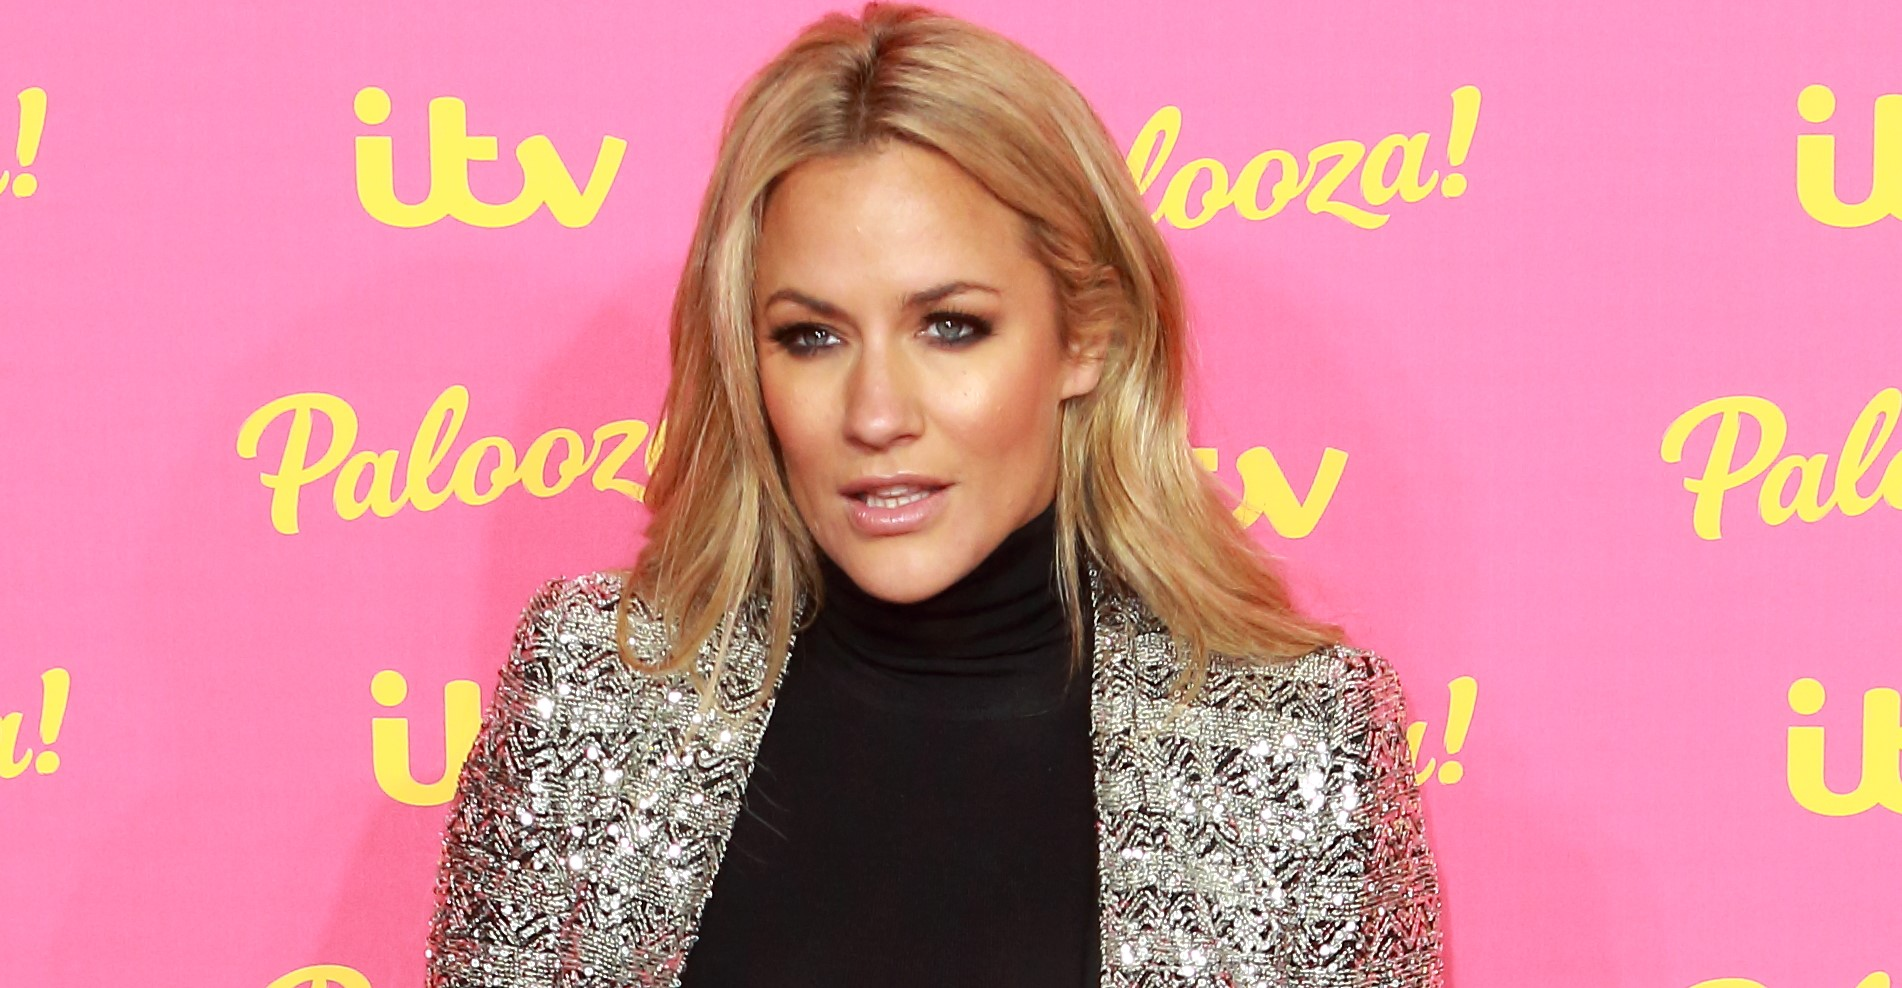 Caroline Flack's assault case officially closed by CPS after tragic death